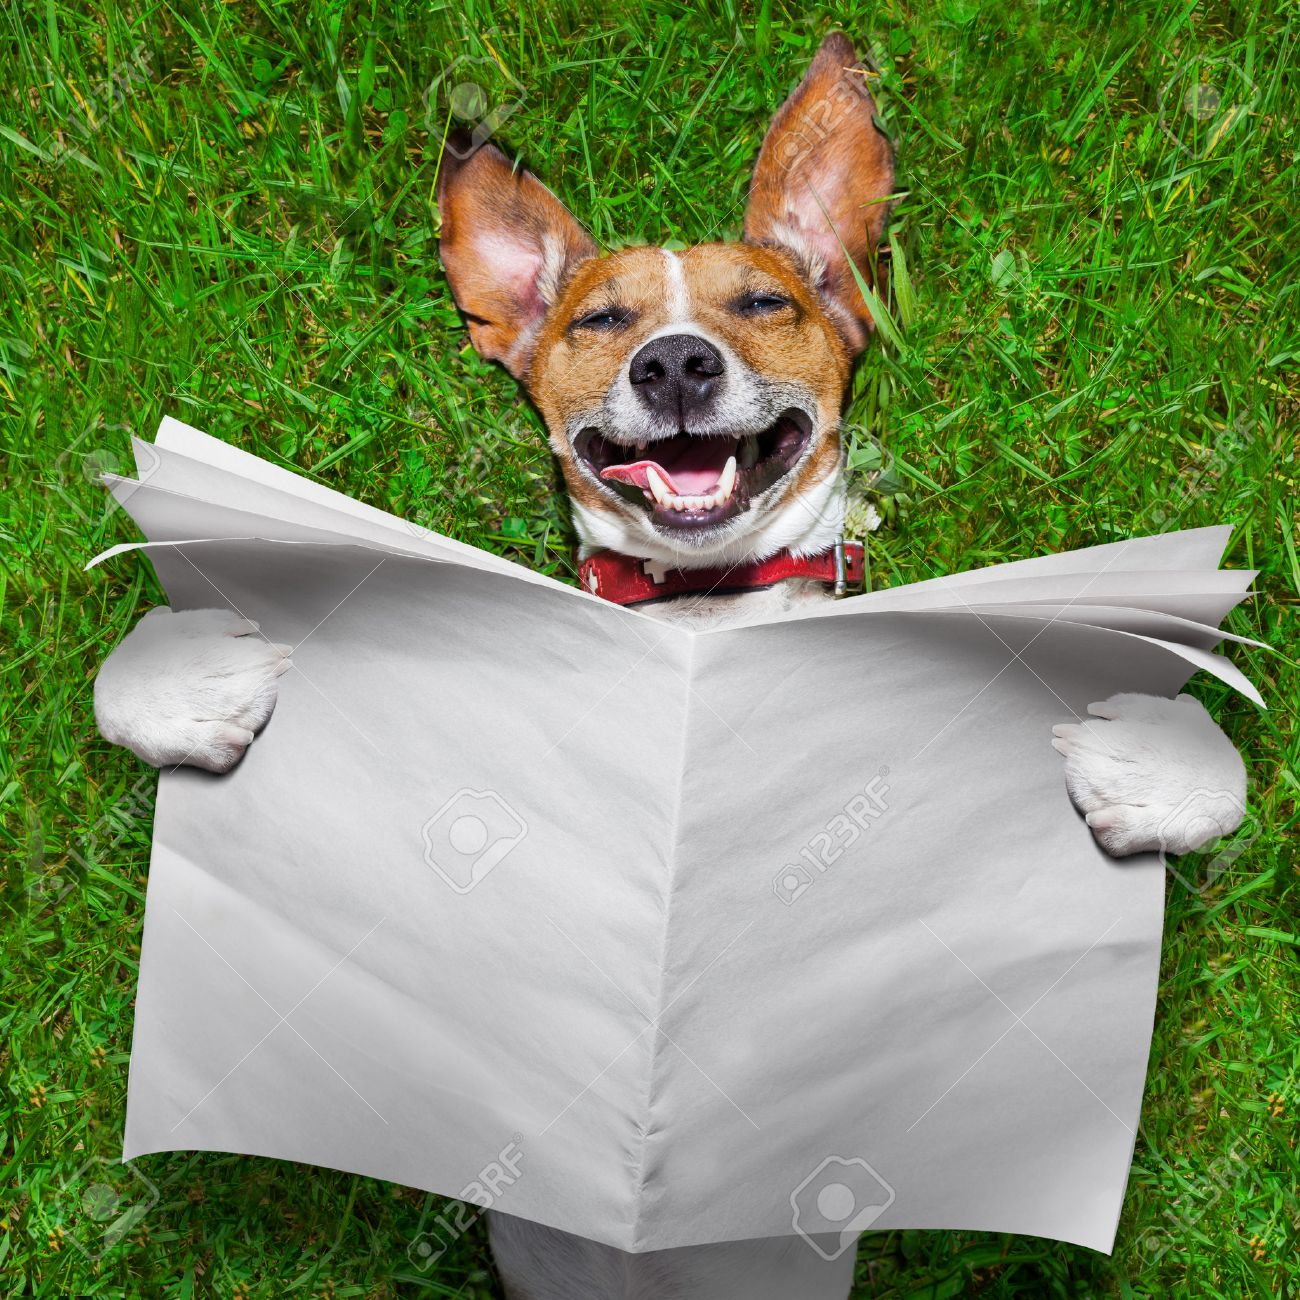 super funny face dog lying on back on green grass reading blank